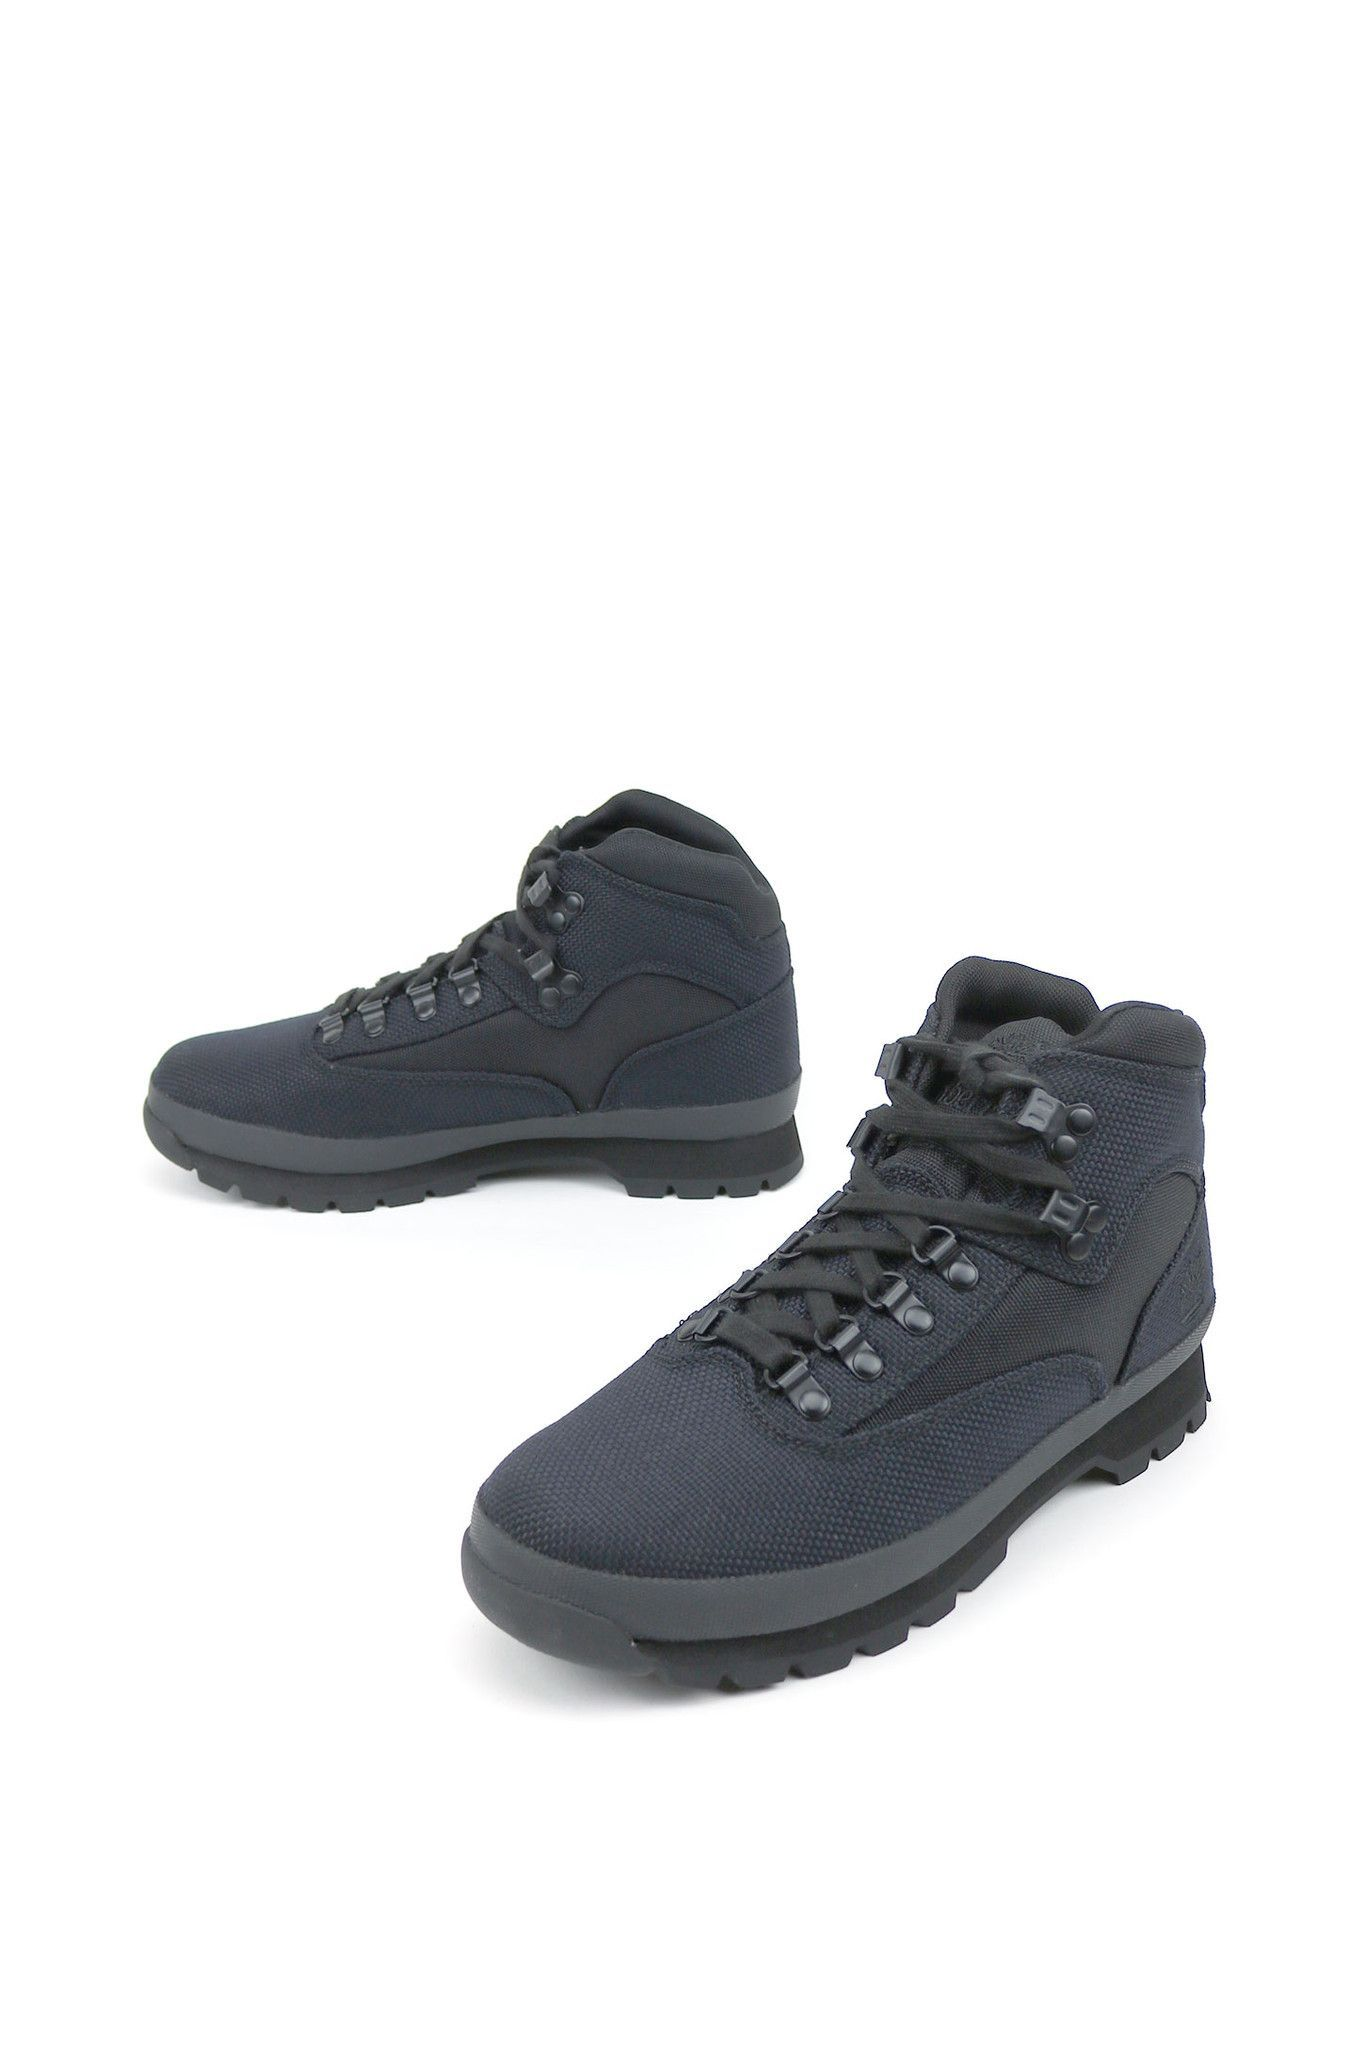 7485c6b1717 Euro Hiker Cordura Fabric Boots | boots and shoes | Boots ...